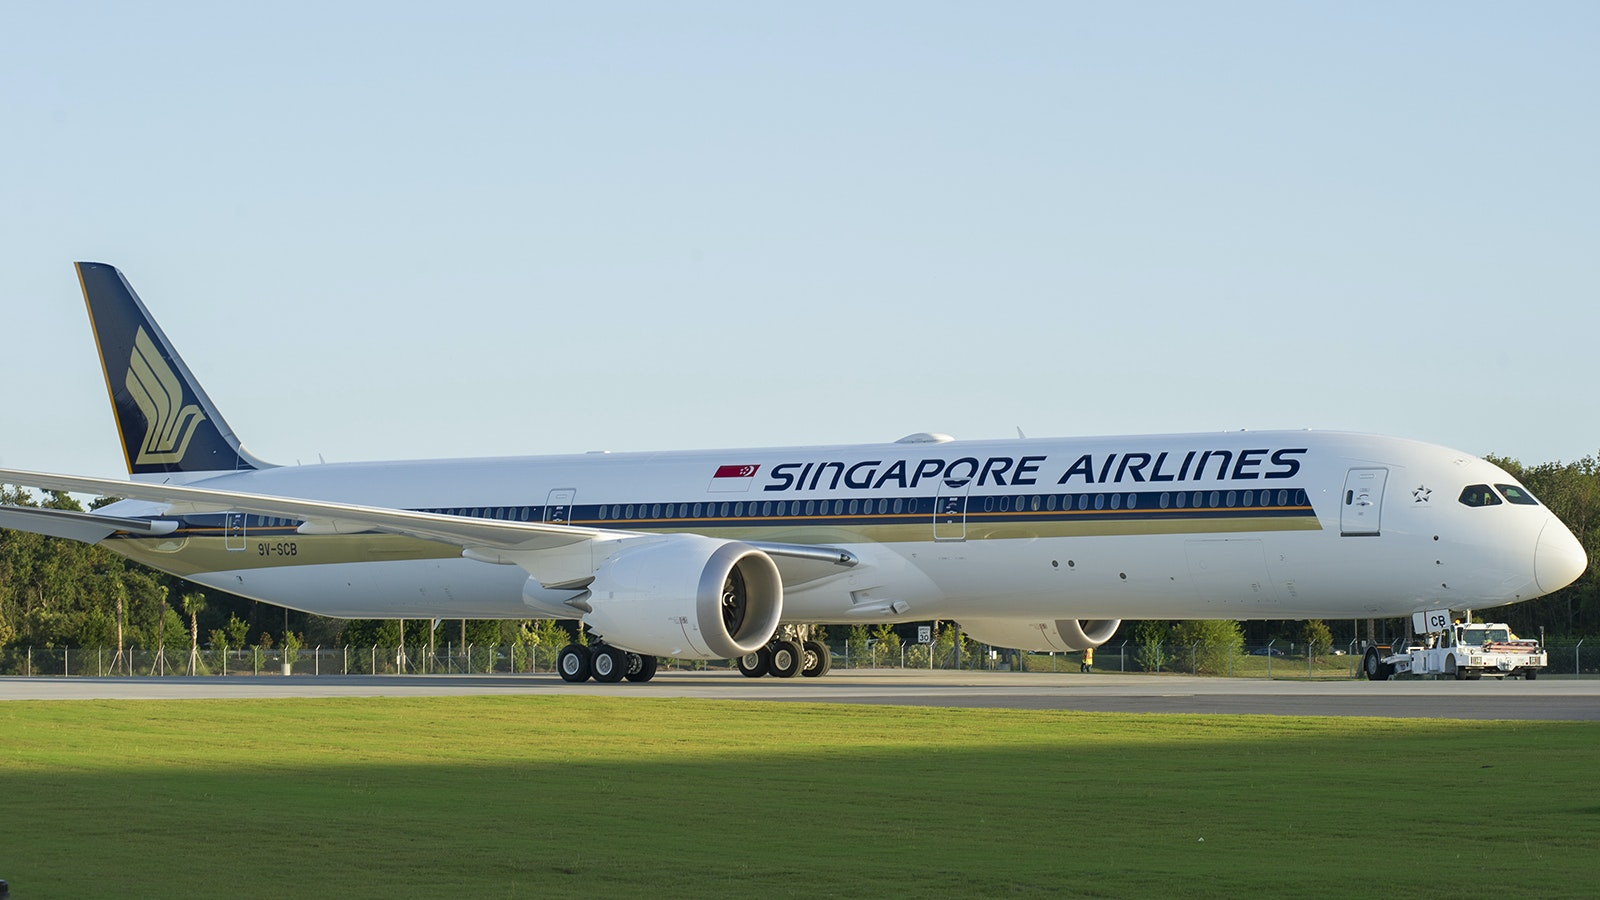 Singapore Airlines is often cited as one of the best airlines in the world.